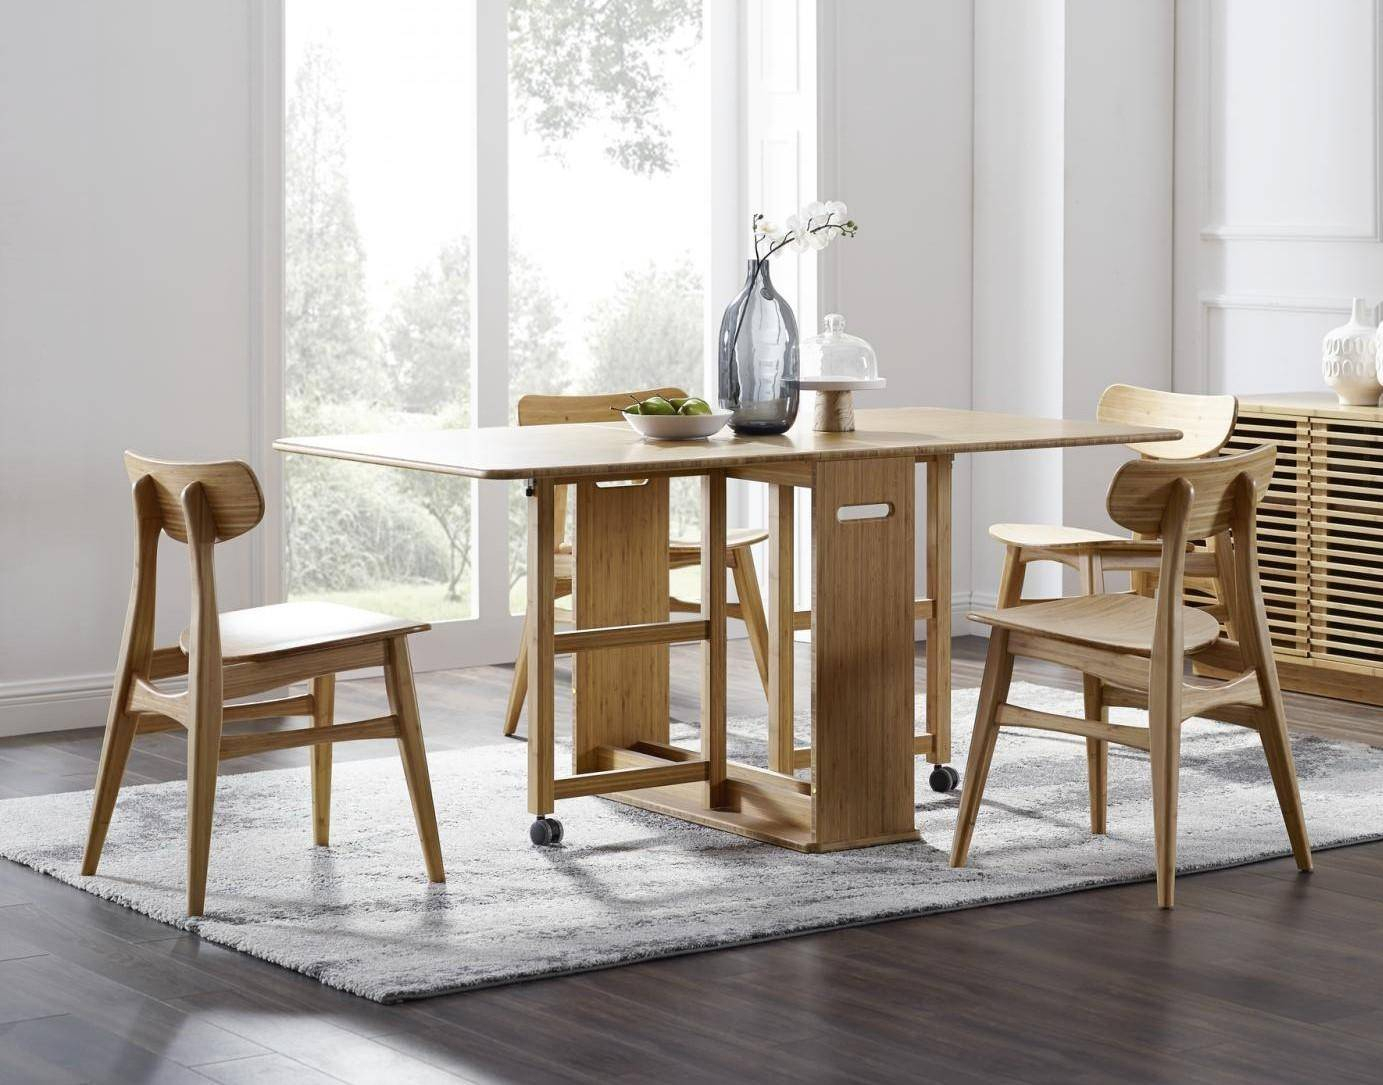 Bamboo Dining Table Set 5 Pcs Caramelized Modern Linden Throughout Recent Linden Round Pedestal Dining Tables (View 17 of 25)